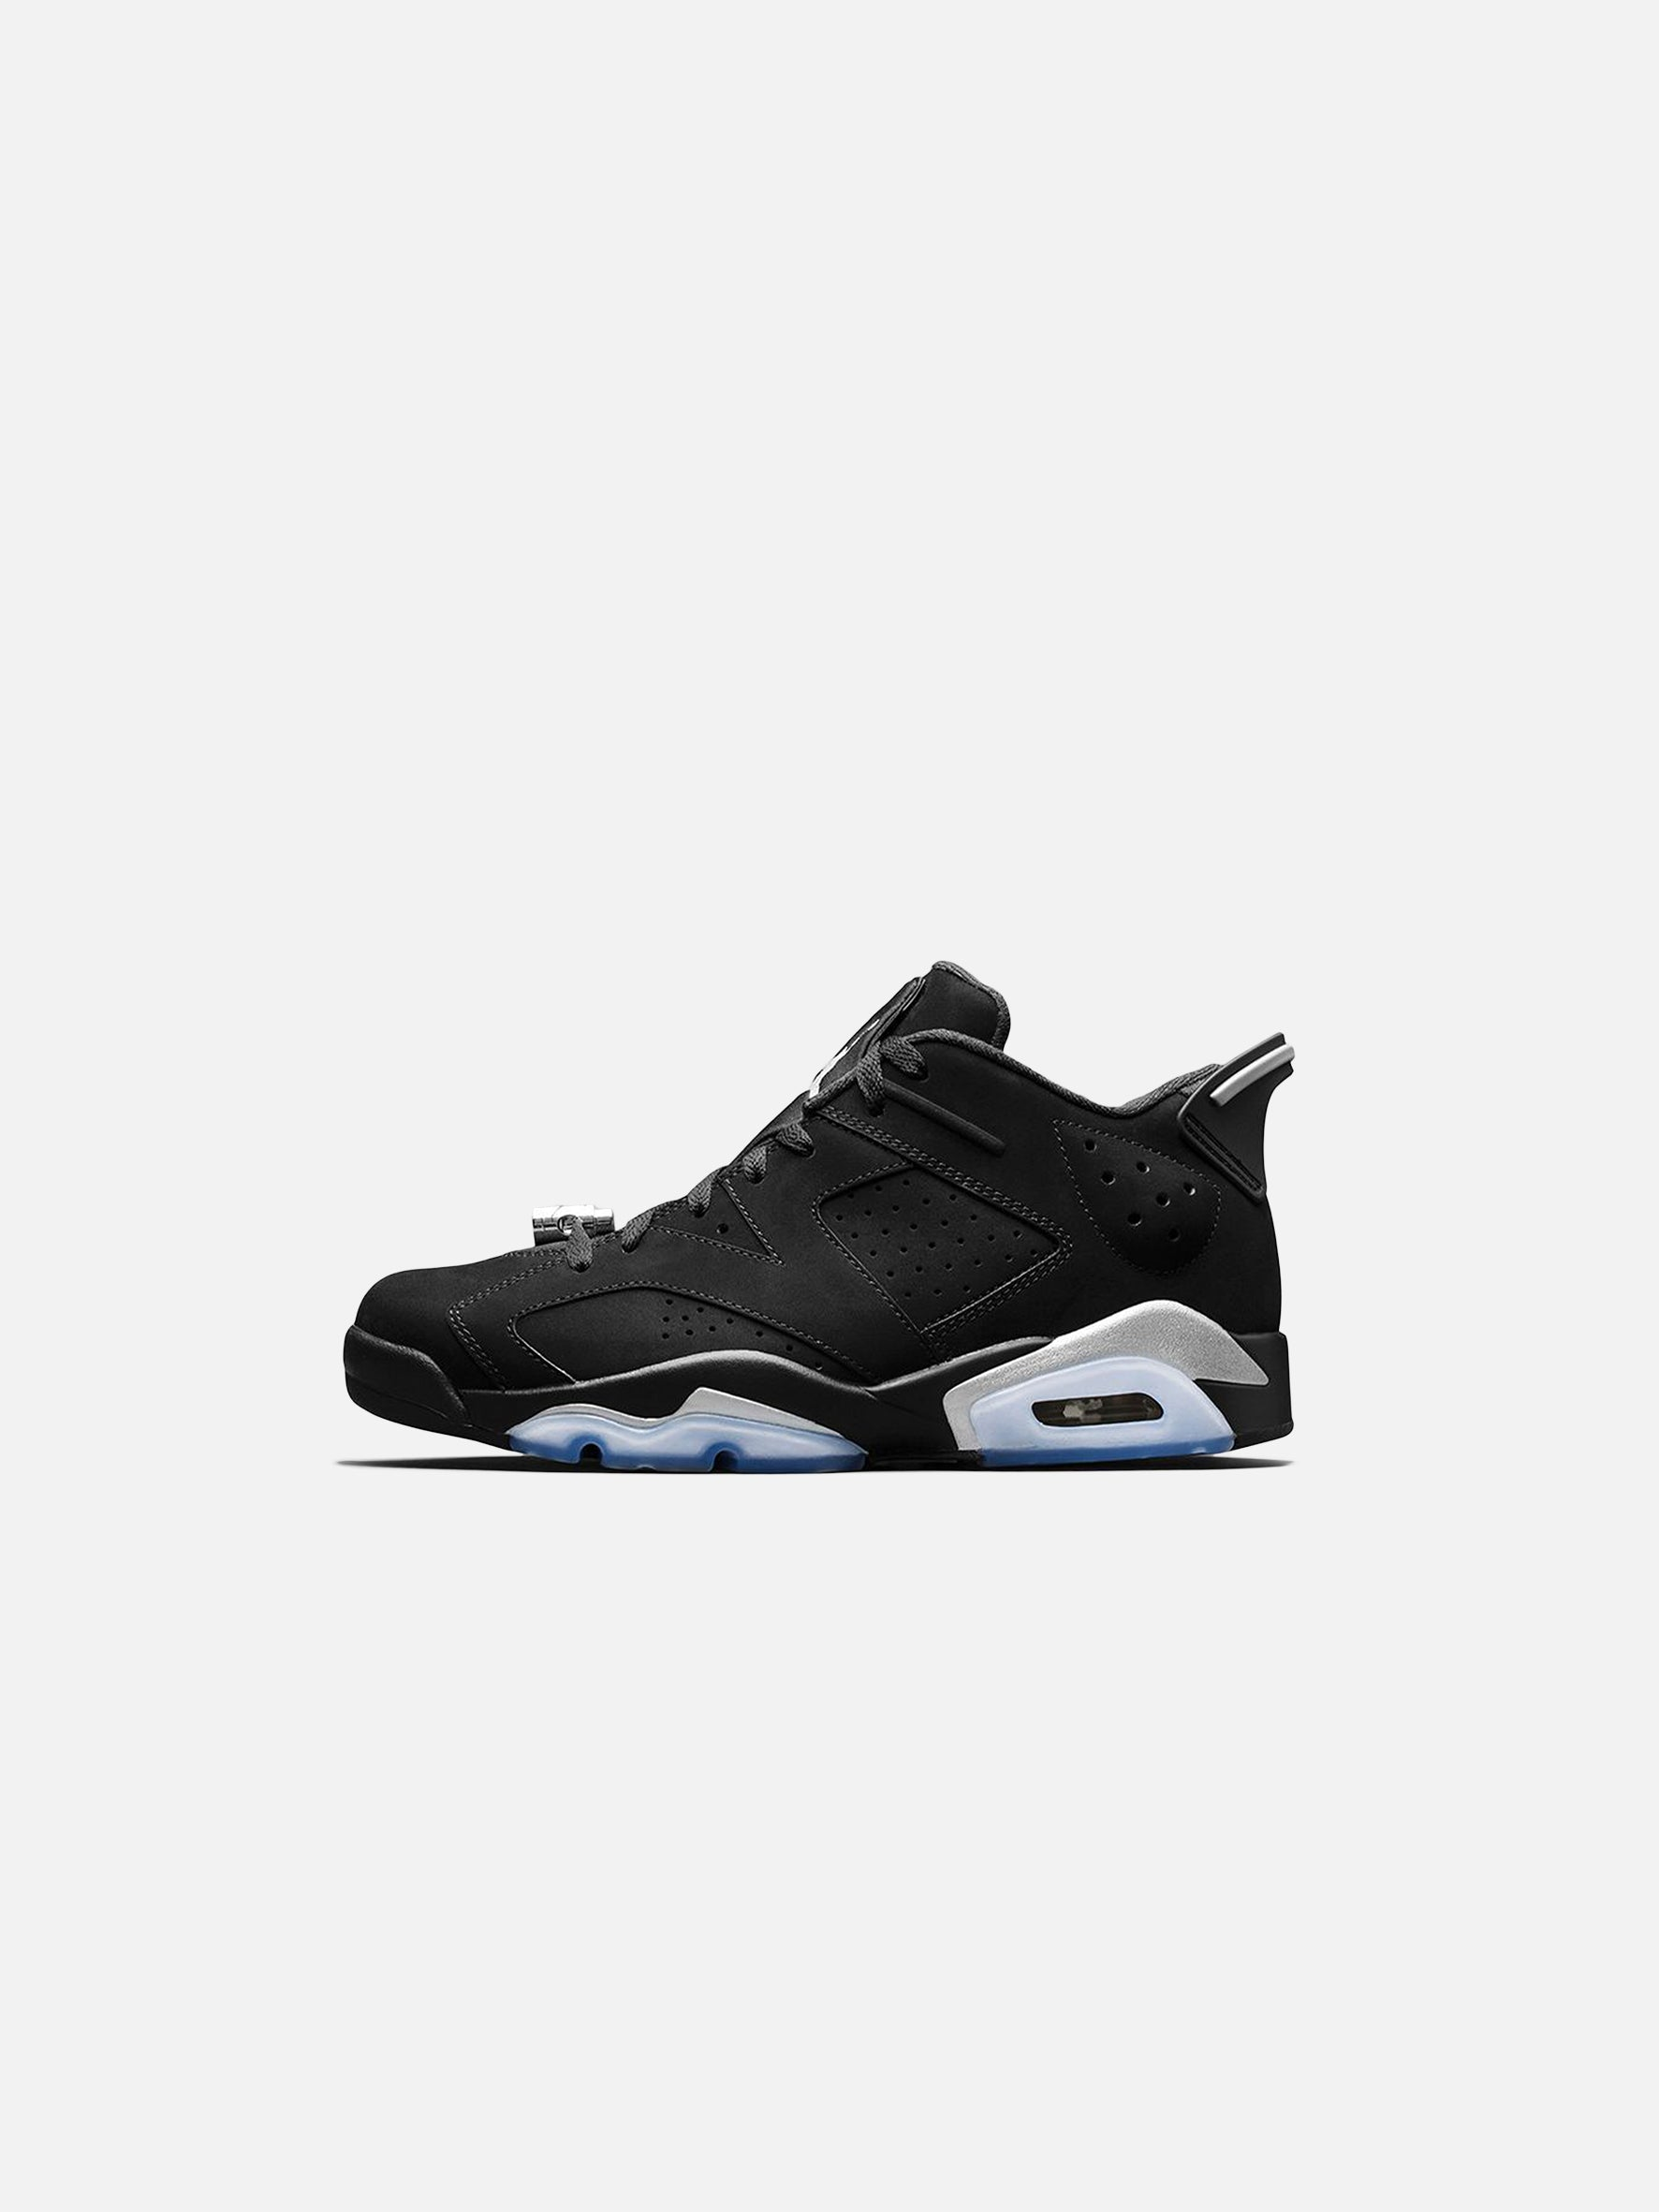 Nike Air Jordan VI Retro Low Chrome